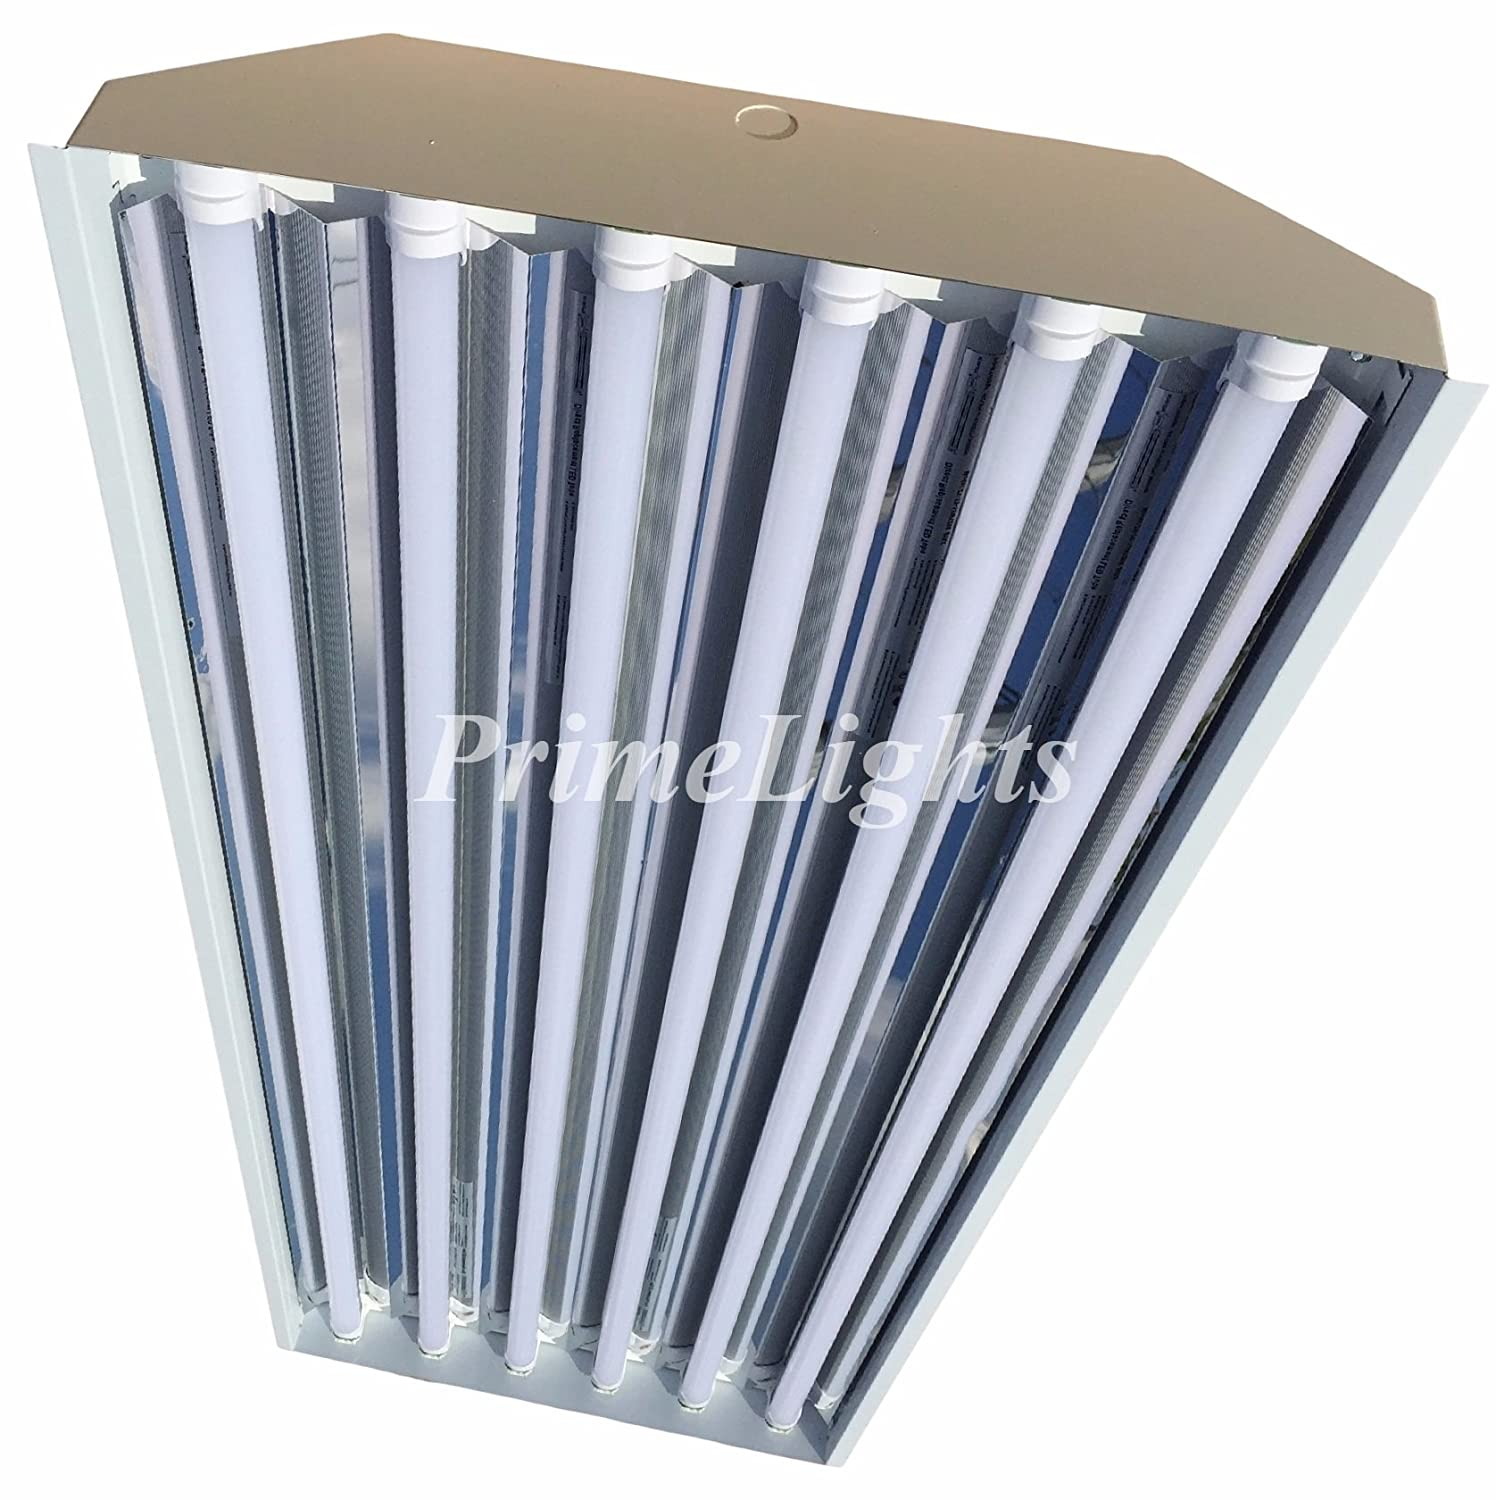 Industrial Lights For Shop: 6 Bulb / Lamp T8 LED High Bay Warehouse, Shop, Commercial